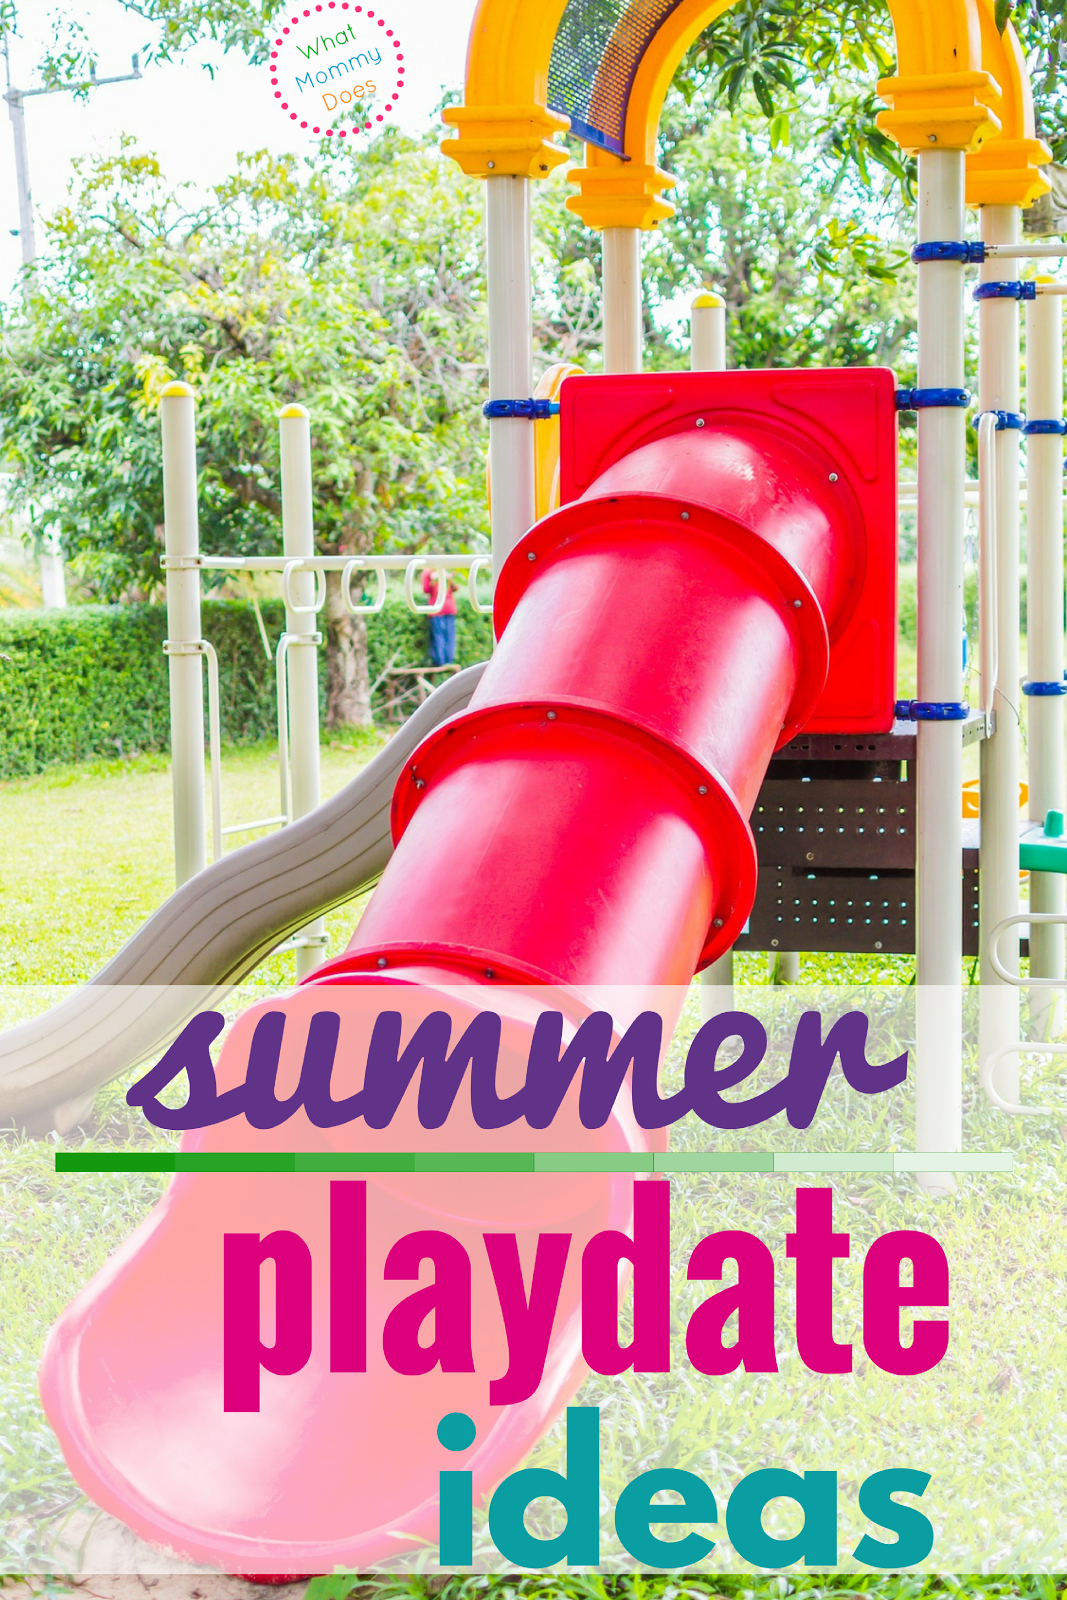 I need some fun summer activities that wont ruin my budget! The most fun adventures are 100% free!! These playdate ideas are fun, creative, and mostly free things to do with your kids in the summertime! :)